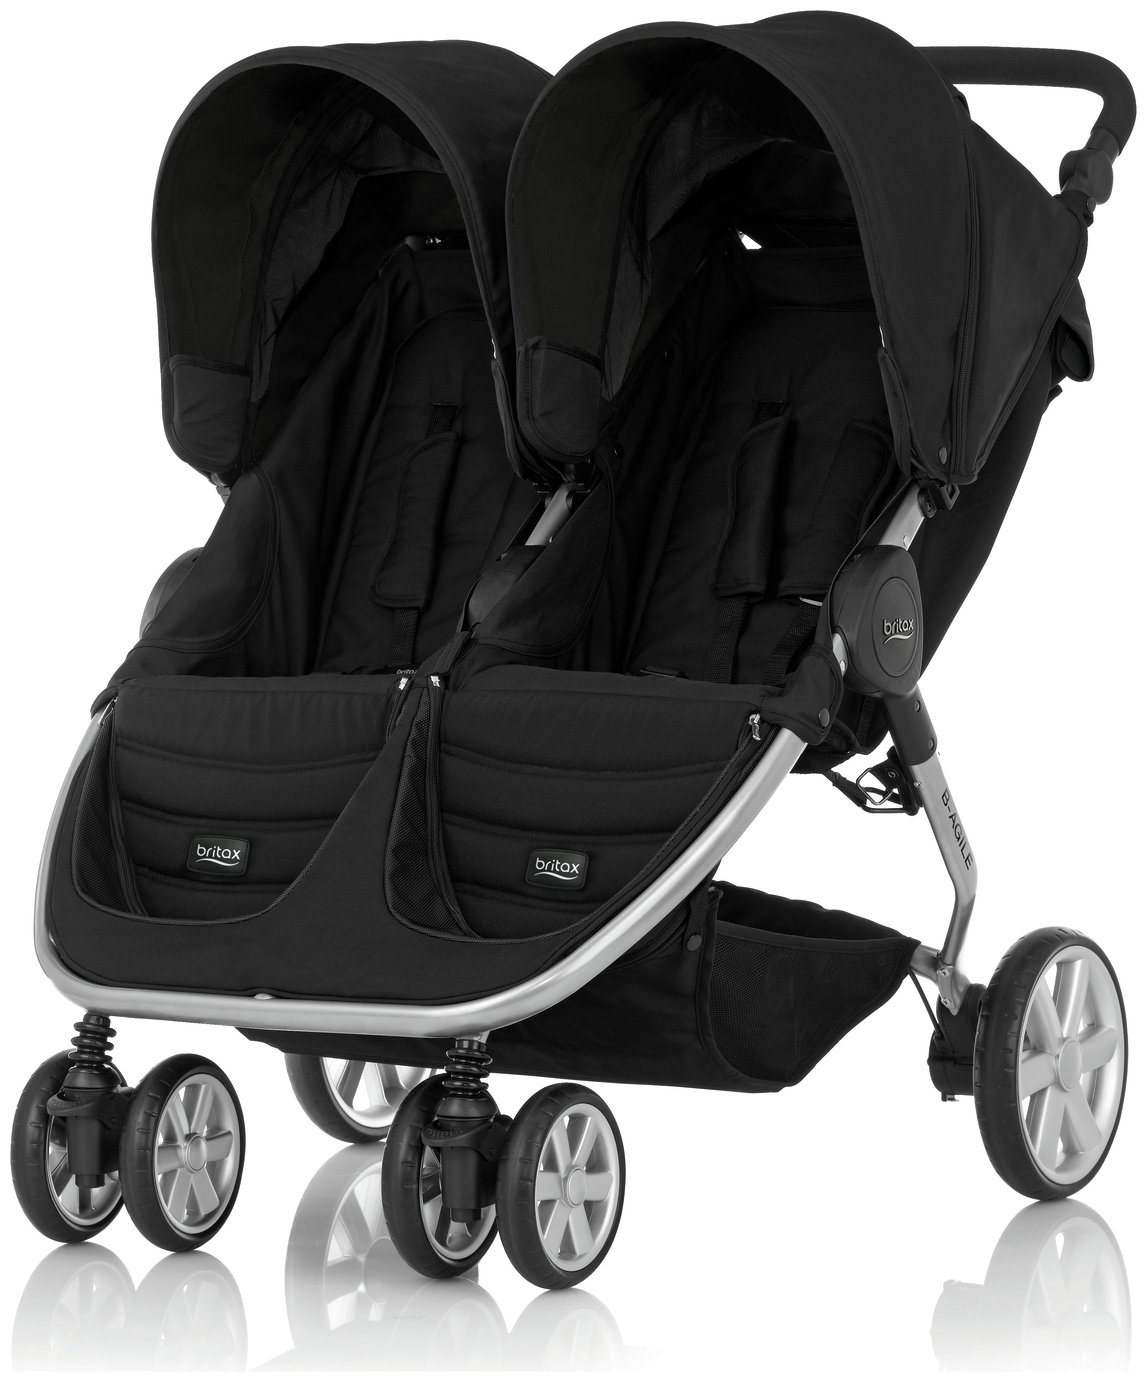 Britax Romer B-AGILE DOUBLE Pushchair – Cosmos Black